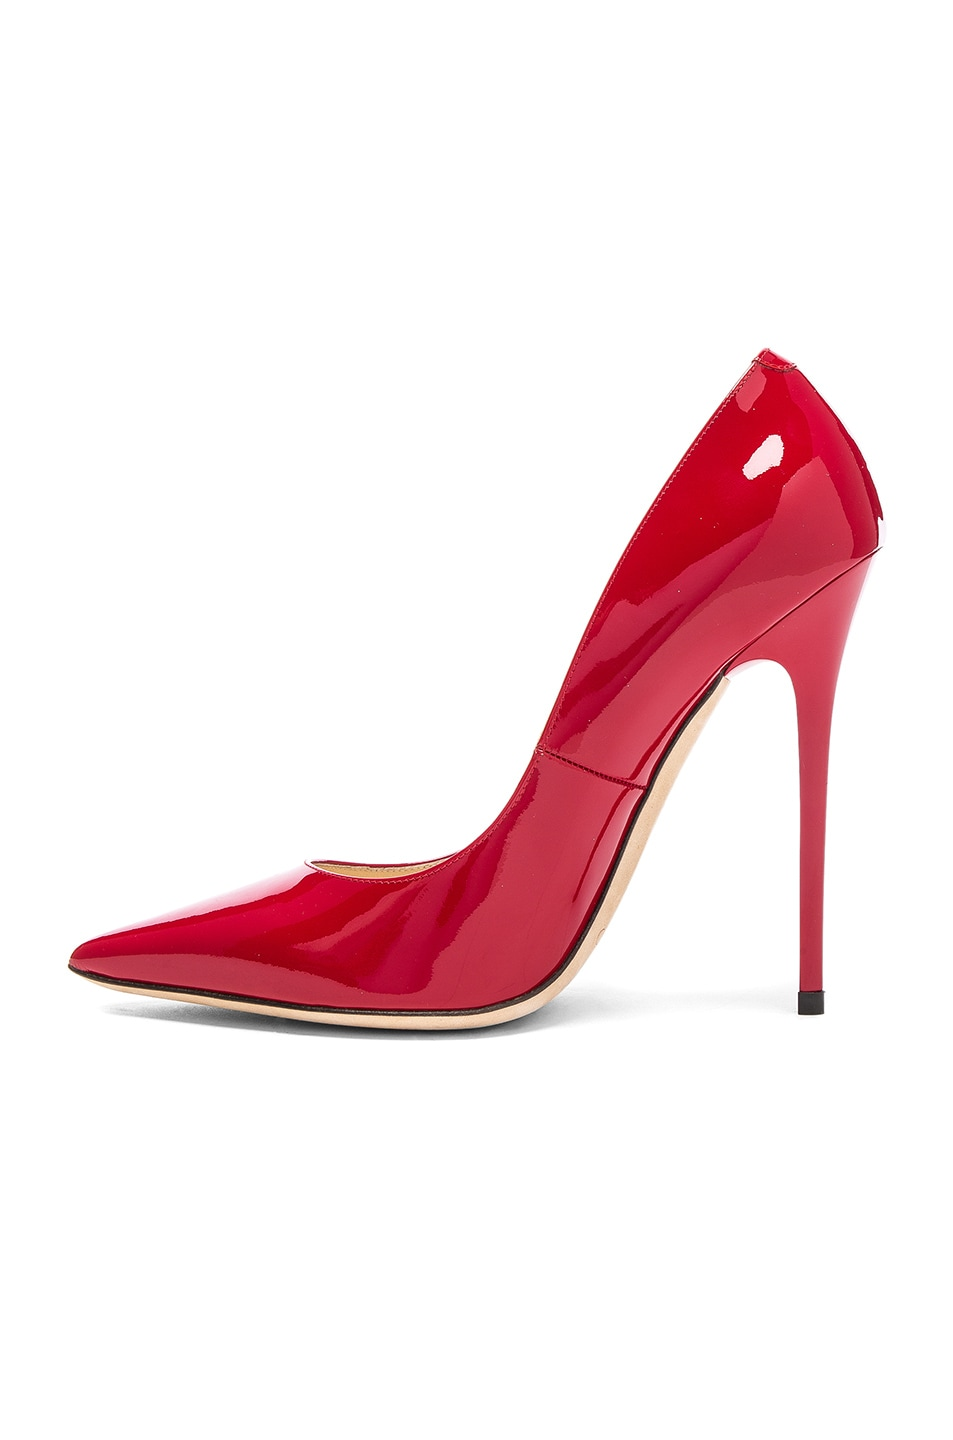 Image 5 of Jimmy Choo Anouk 120 Patent Leather Pump in Red